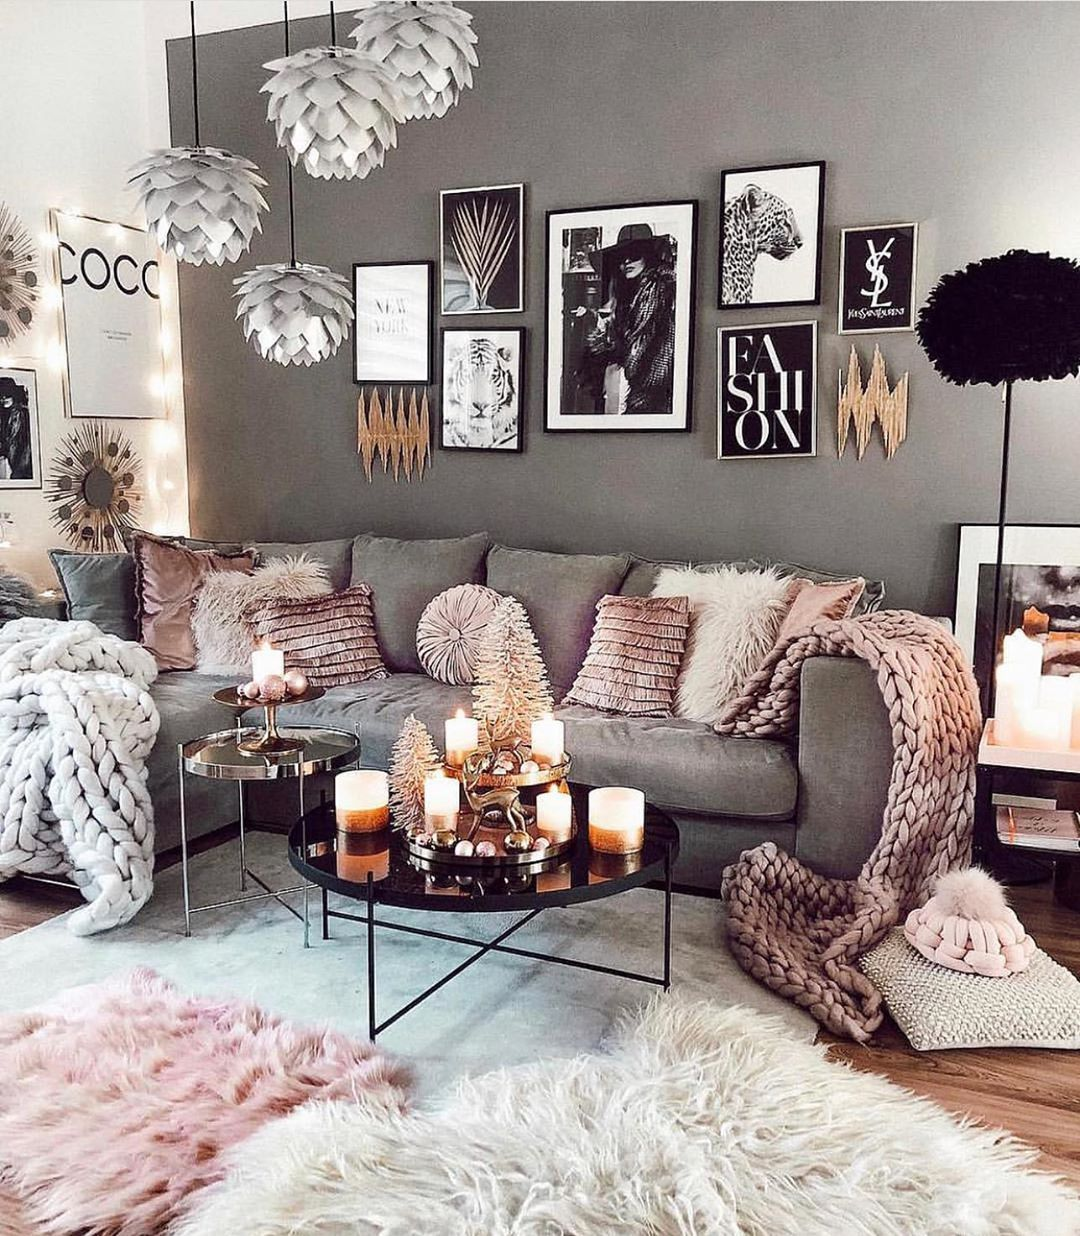 Inspiring Bohemian Apartment Decor On A Budget